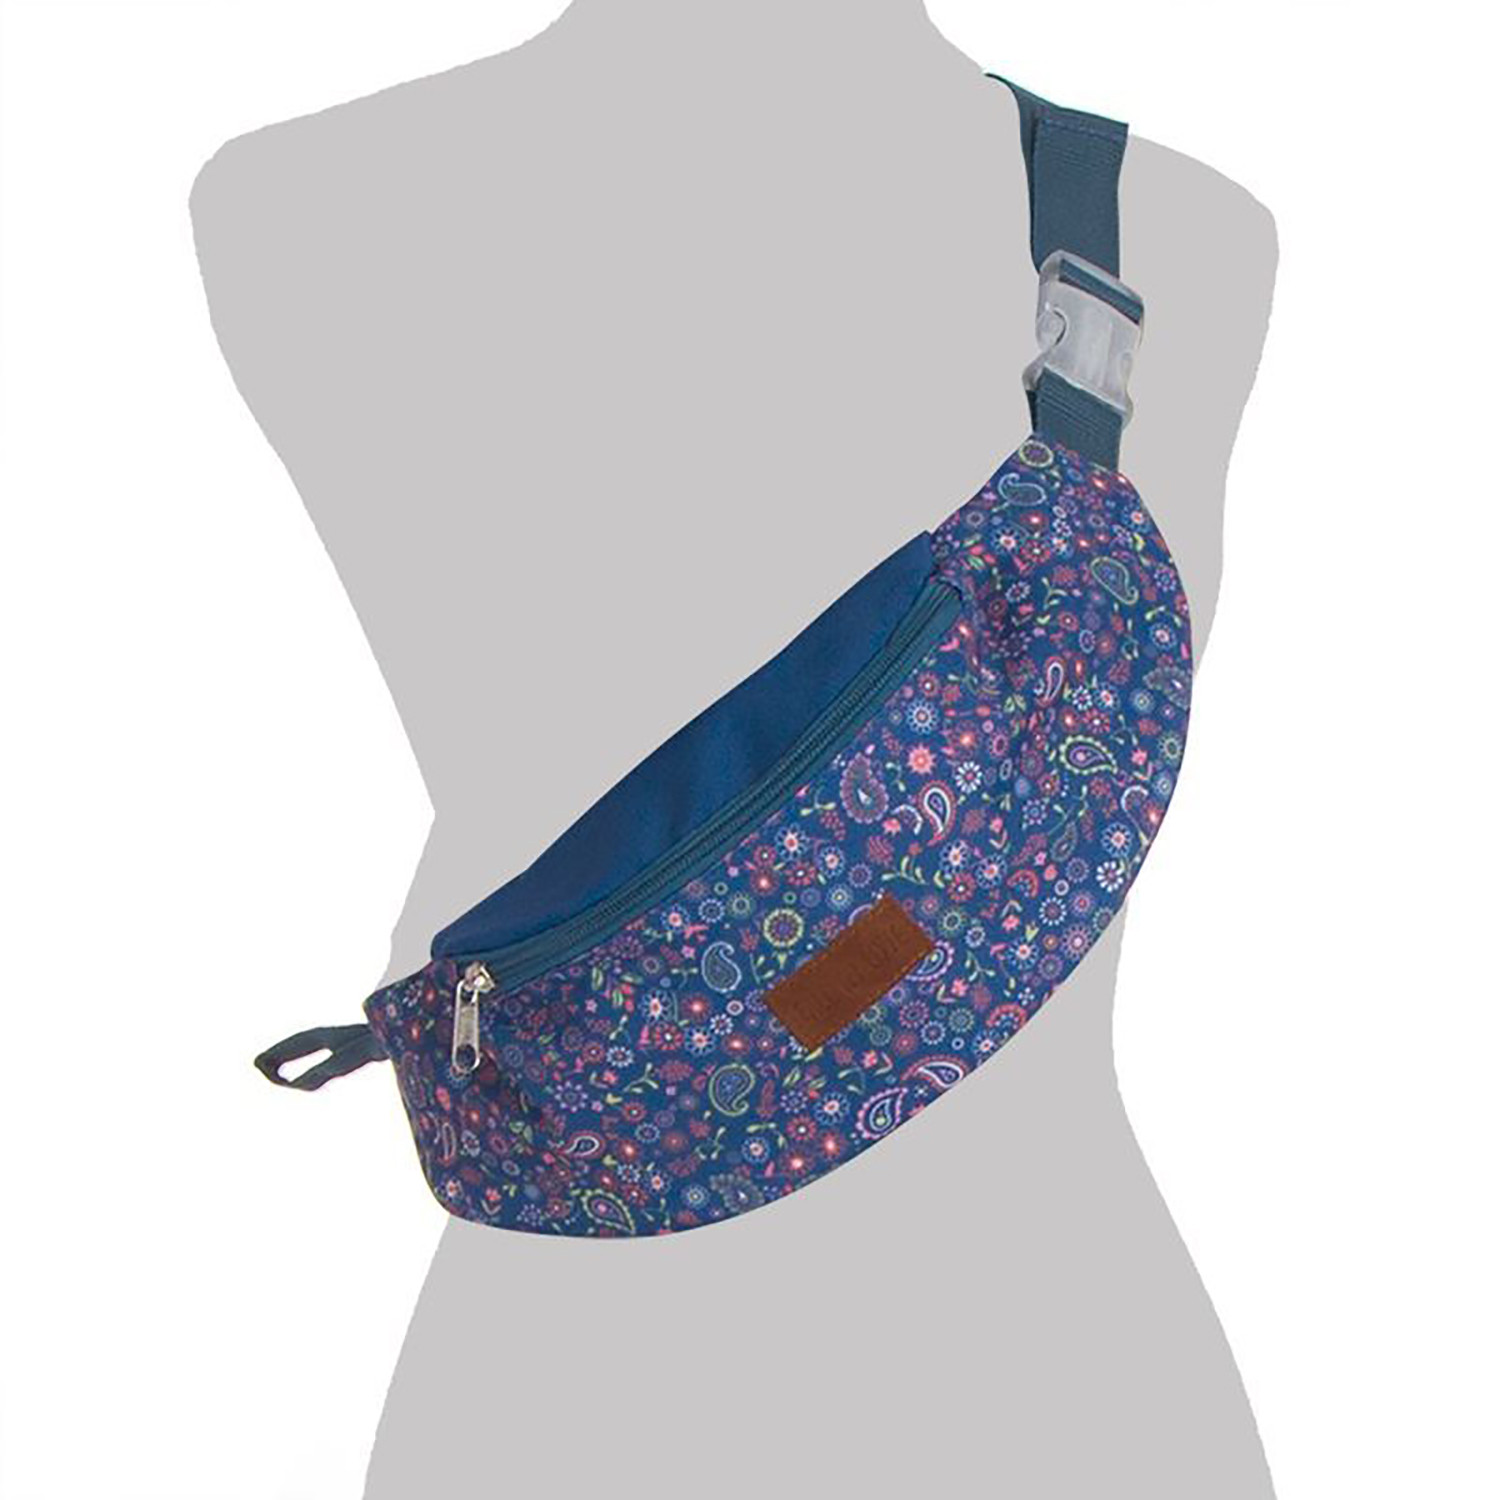 Fanny pack Woman Flower with Zipper, Large Capacity. Fanny packs-Original and Modern, 32,5x11,5 cm